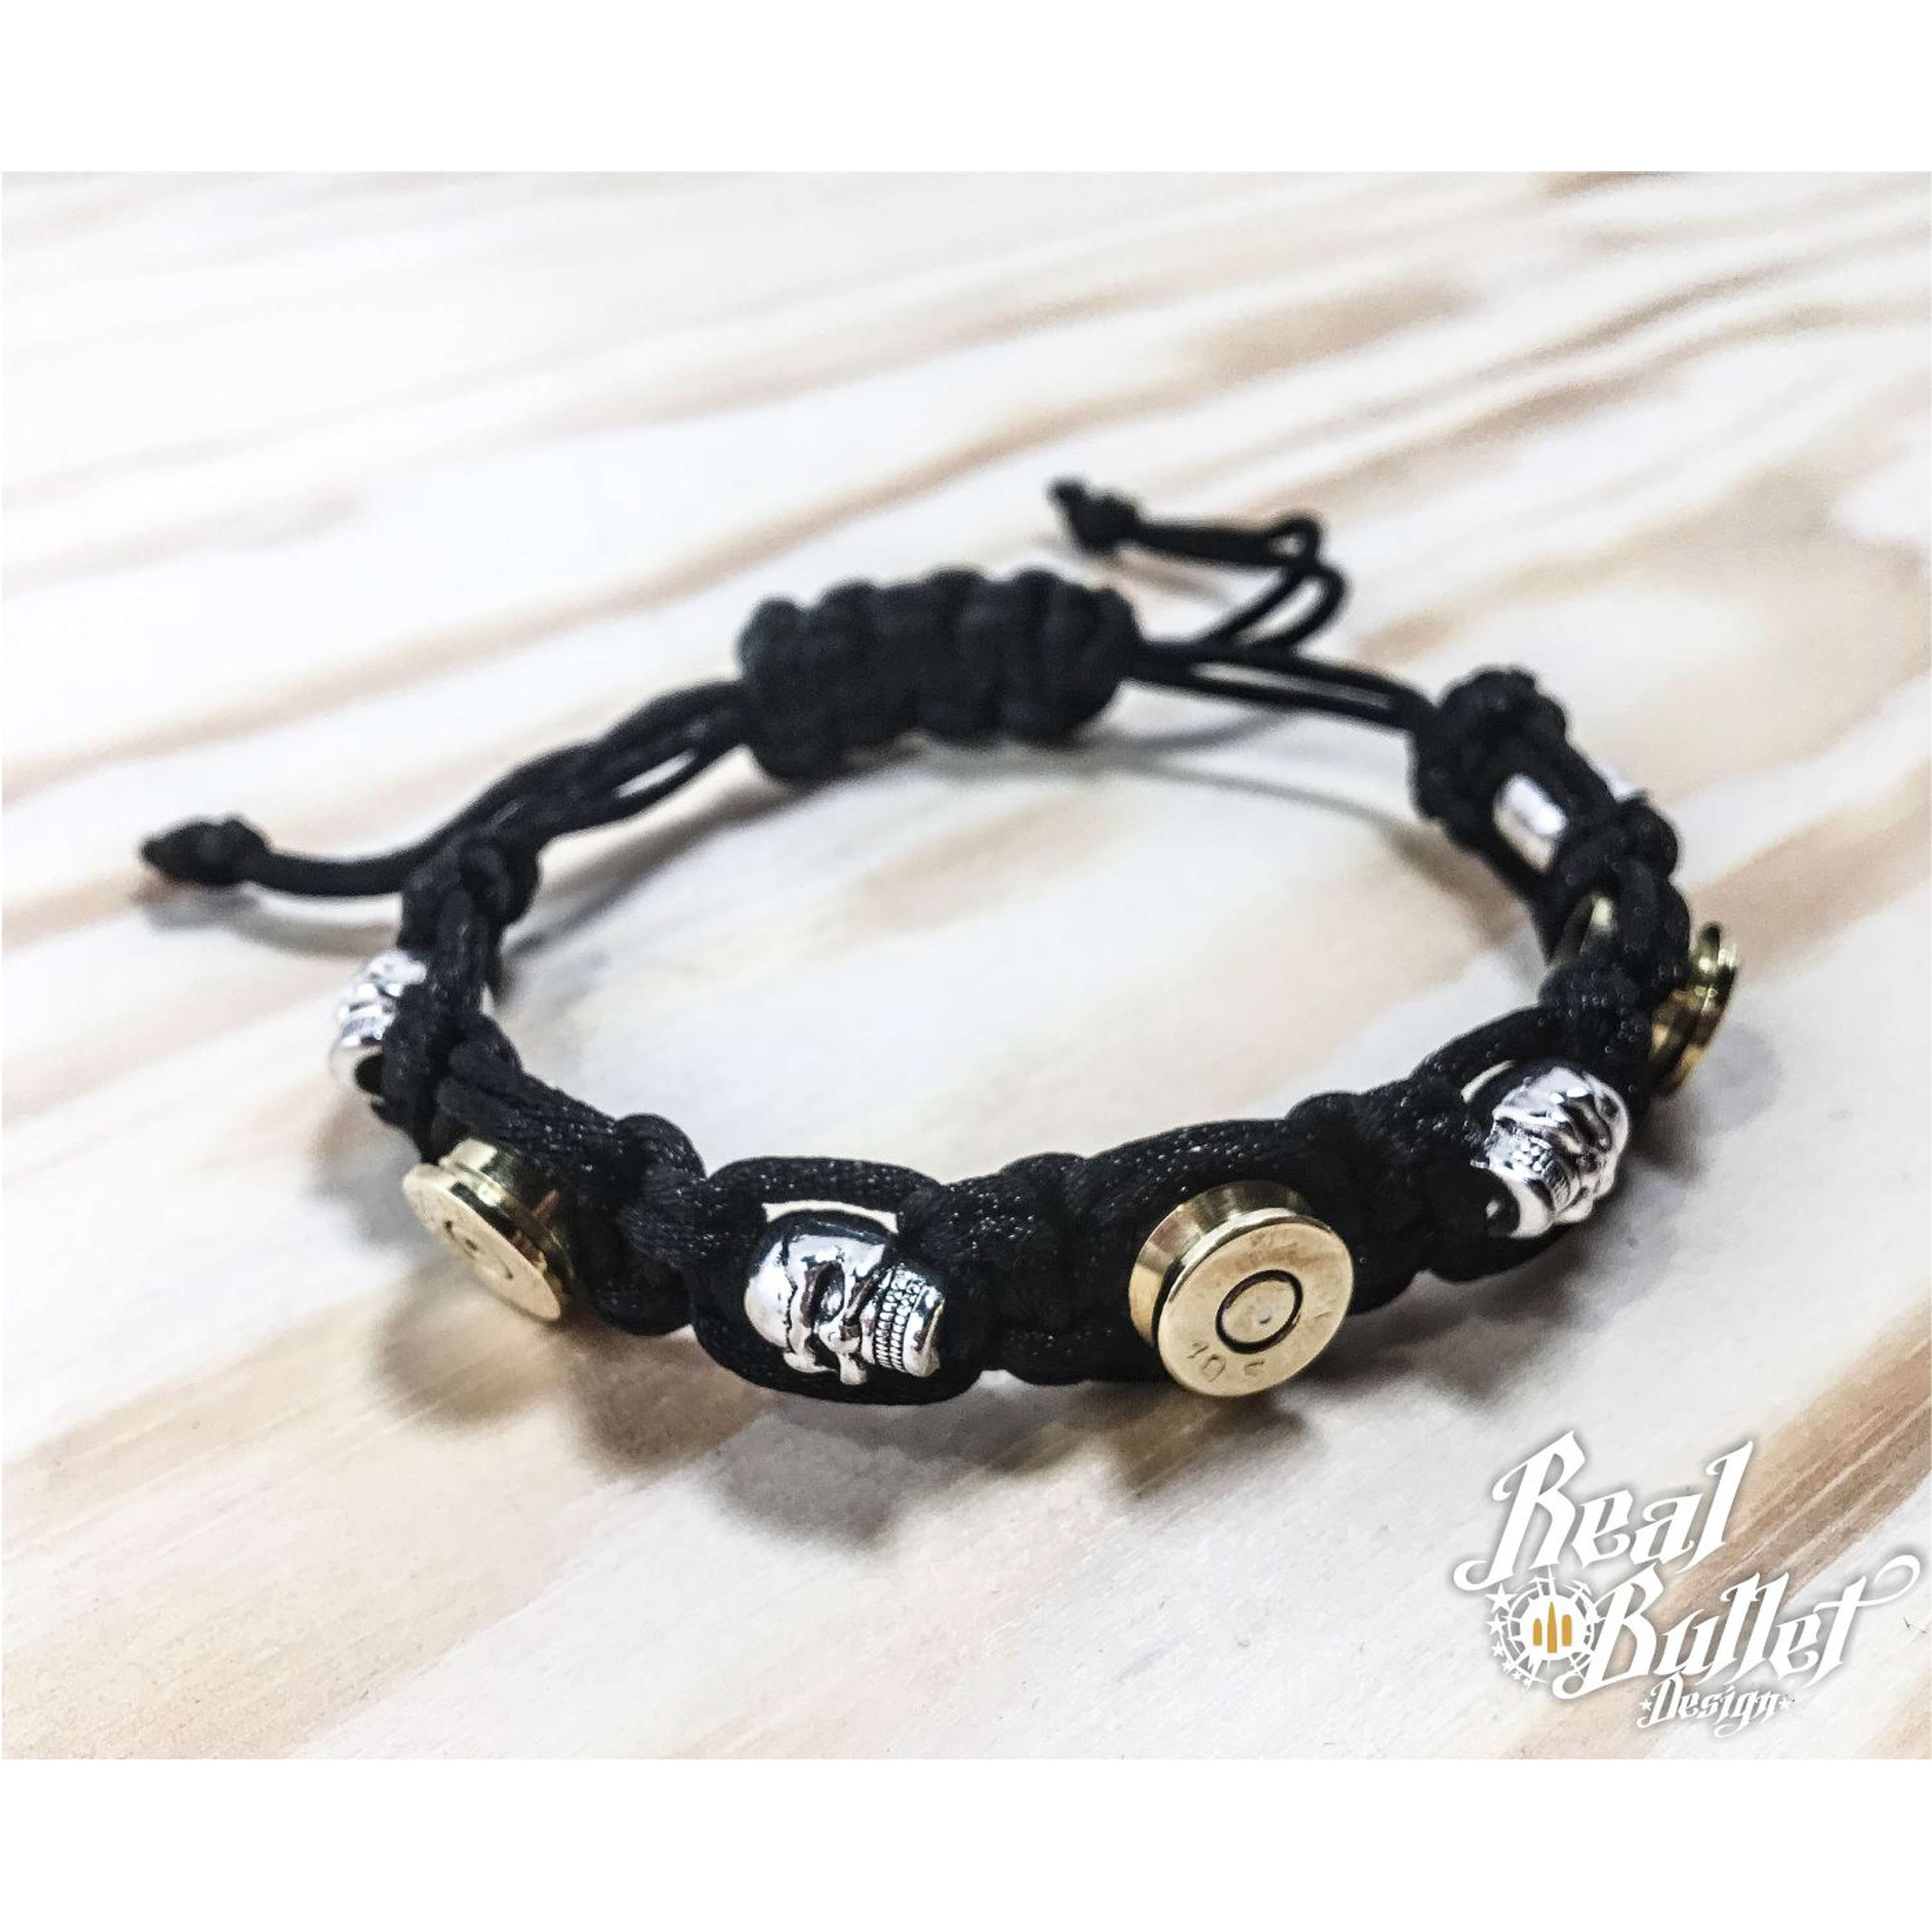 Real Bullet Design Armband Alpha Black Cord Lady